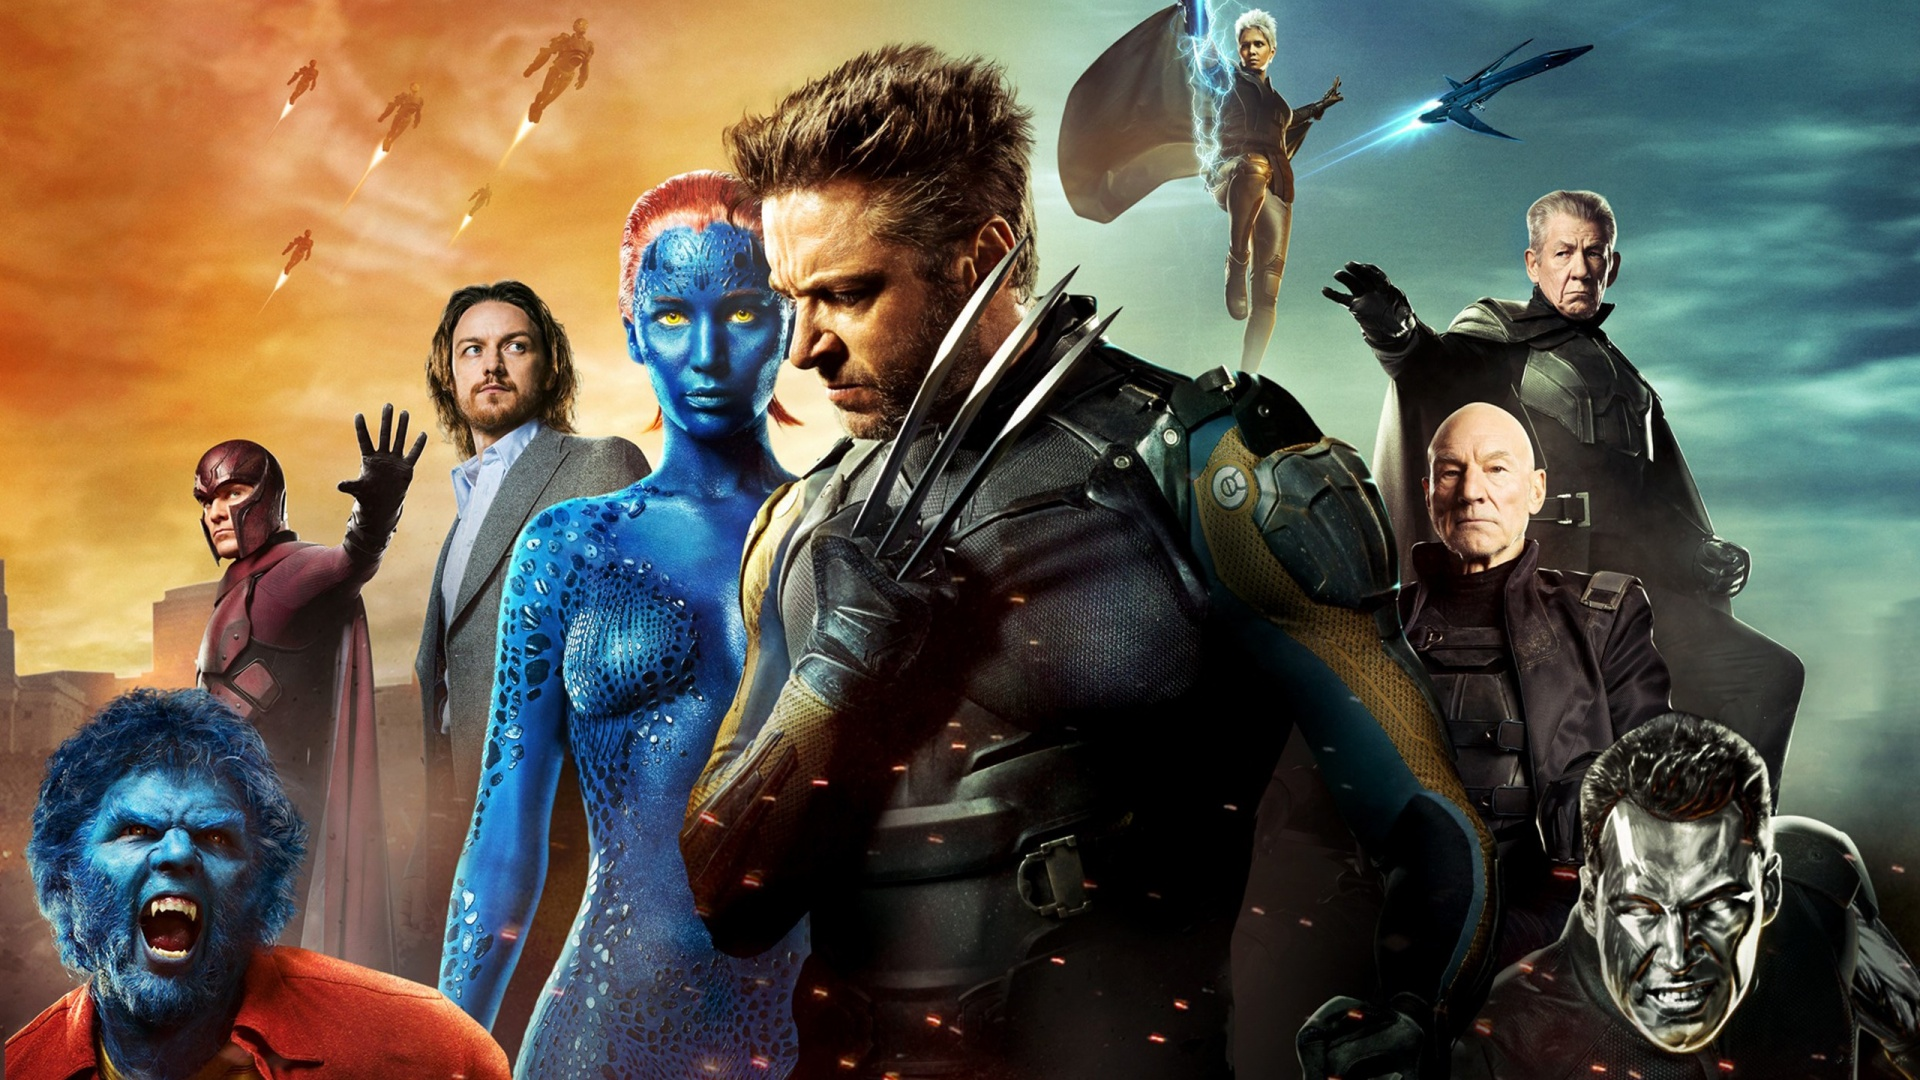 xmen days of future past   Marvel Live action Movies Wallpaper 1920x1080